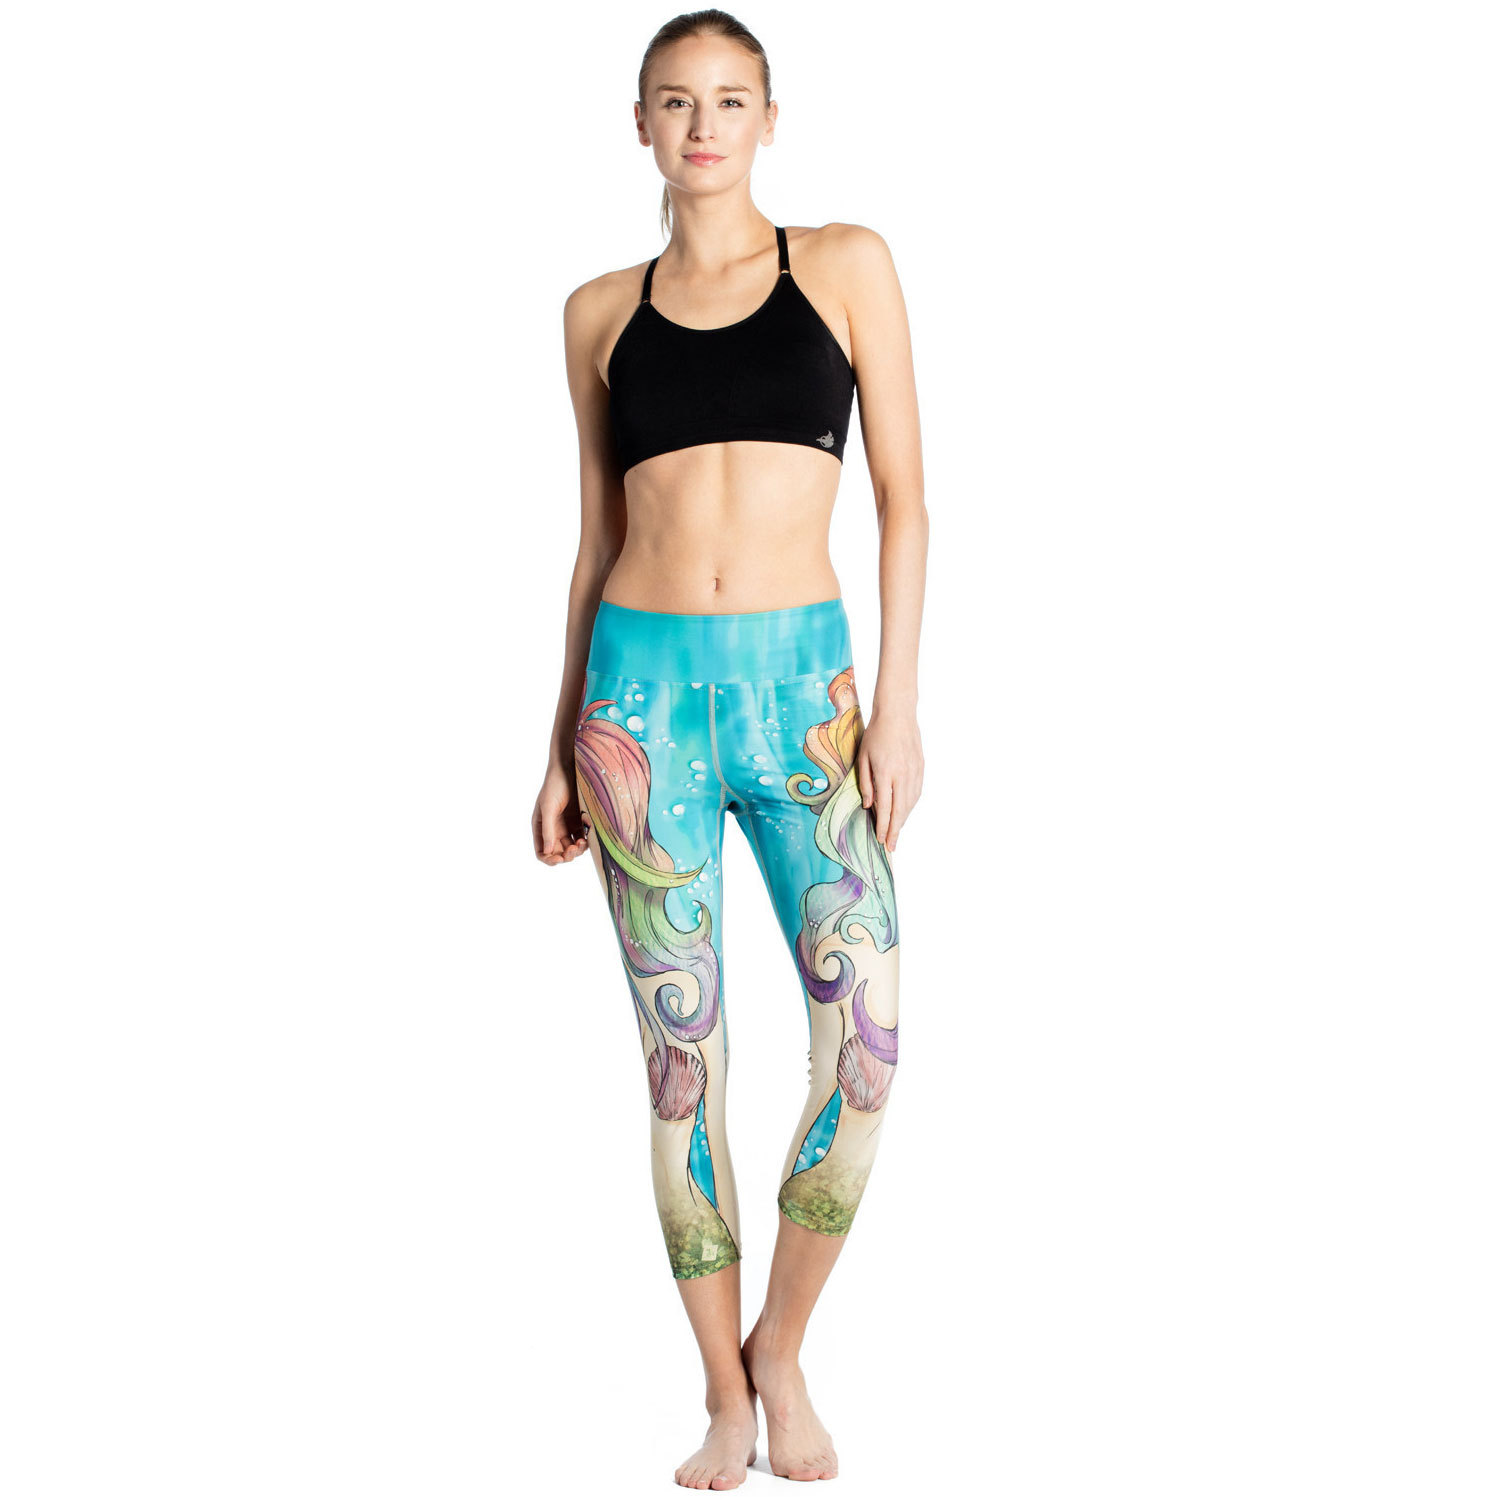 The New Submarine Doll Female Printing Slim S Breathable Sweat-absorbent Women's Seven Lady Pants Leggings